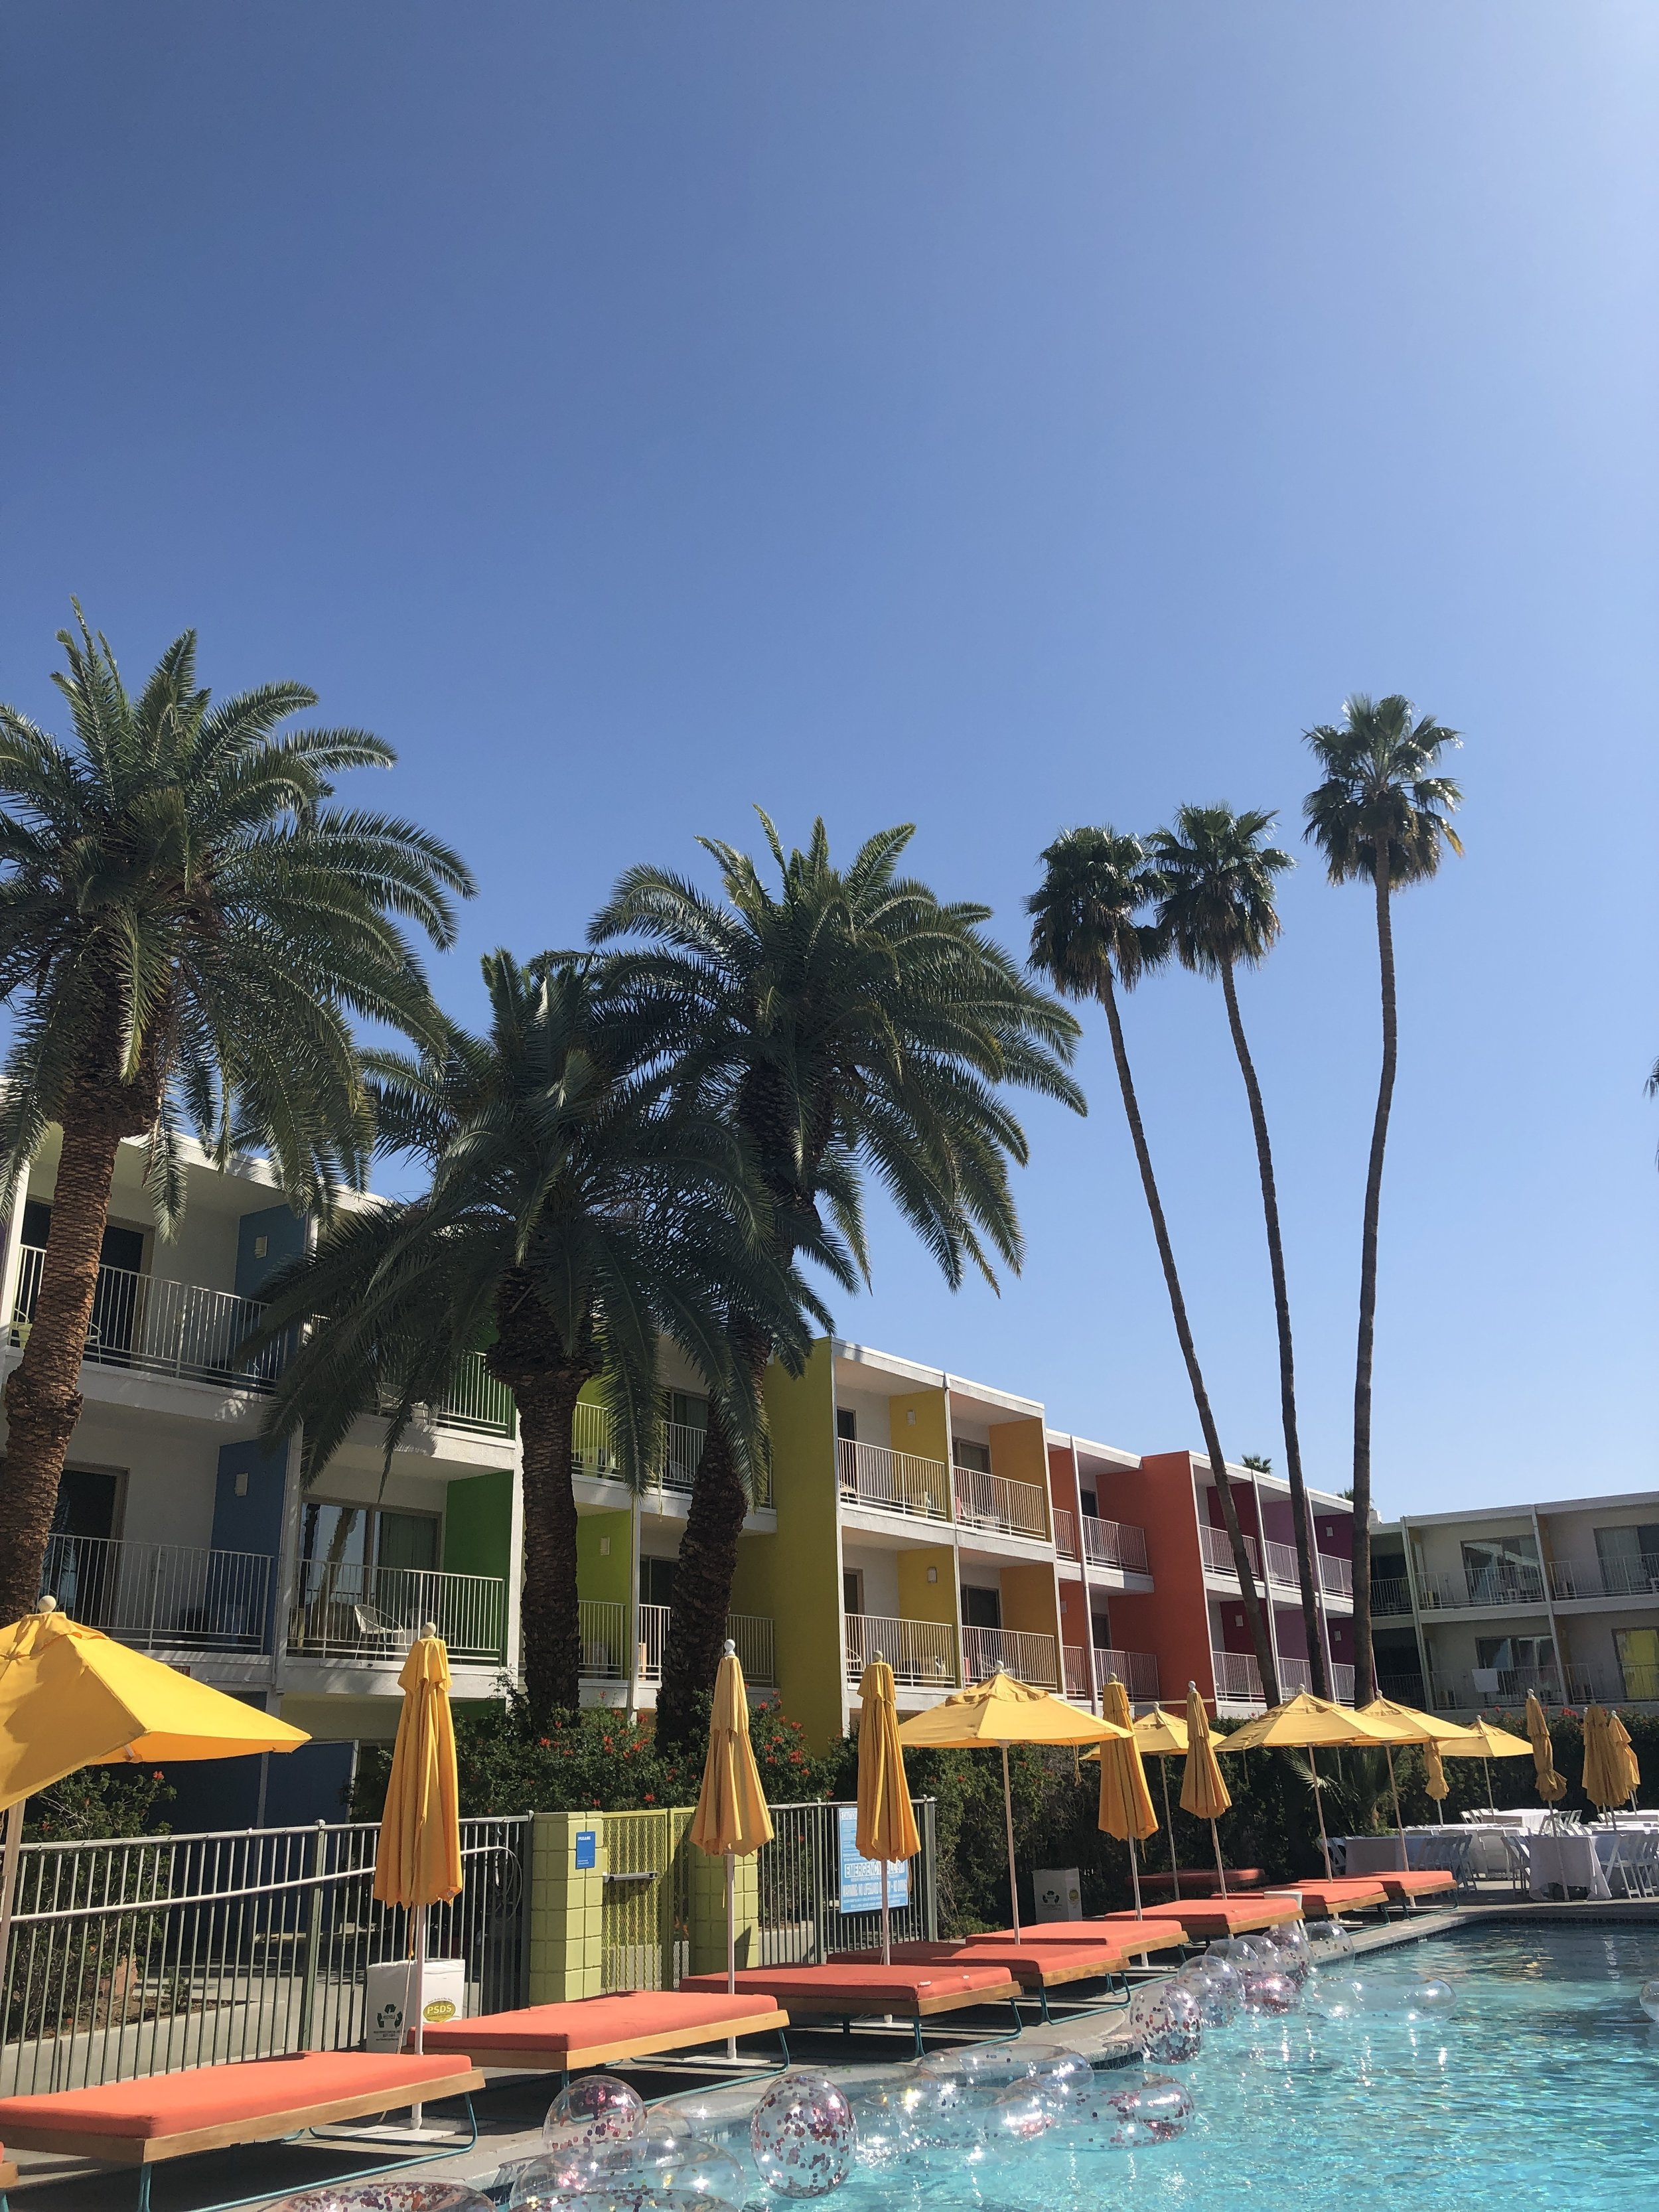 Even the hotels are rainbow colored in beautiful Palm Springs!